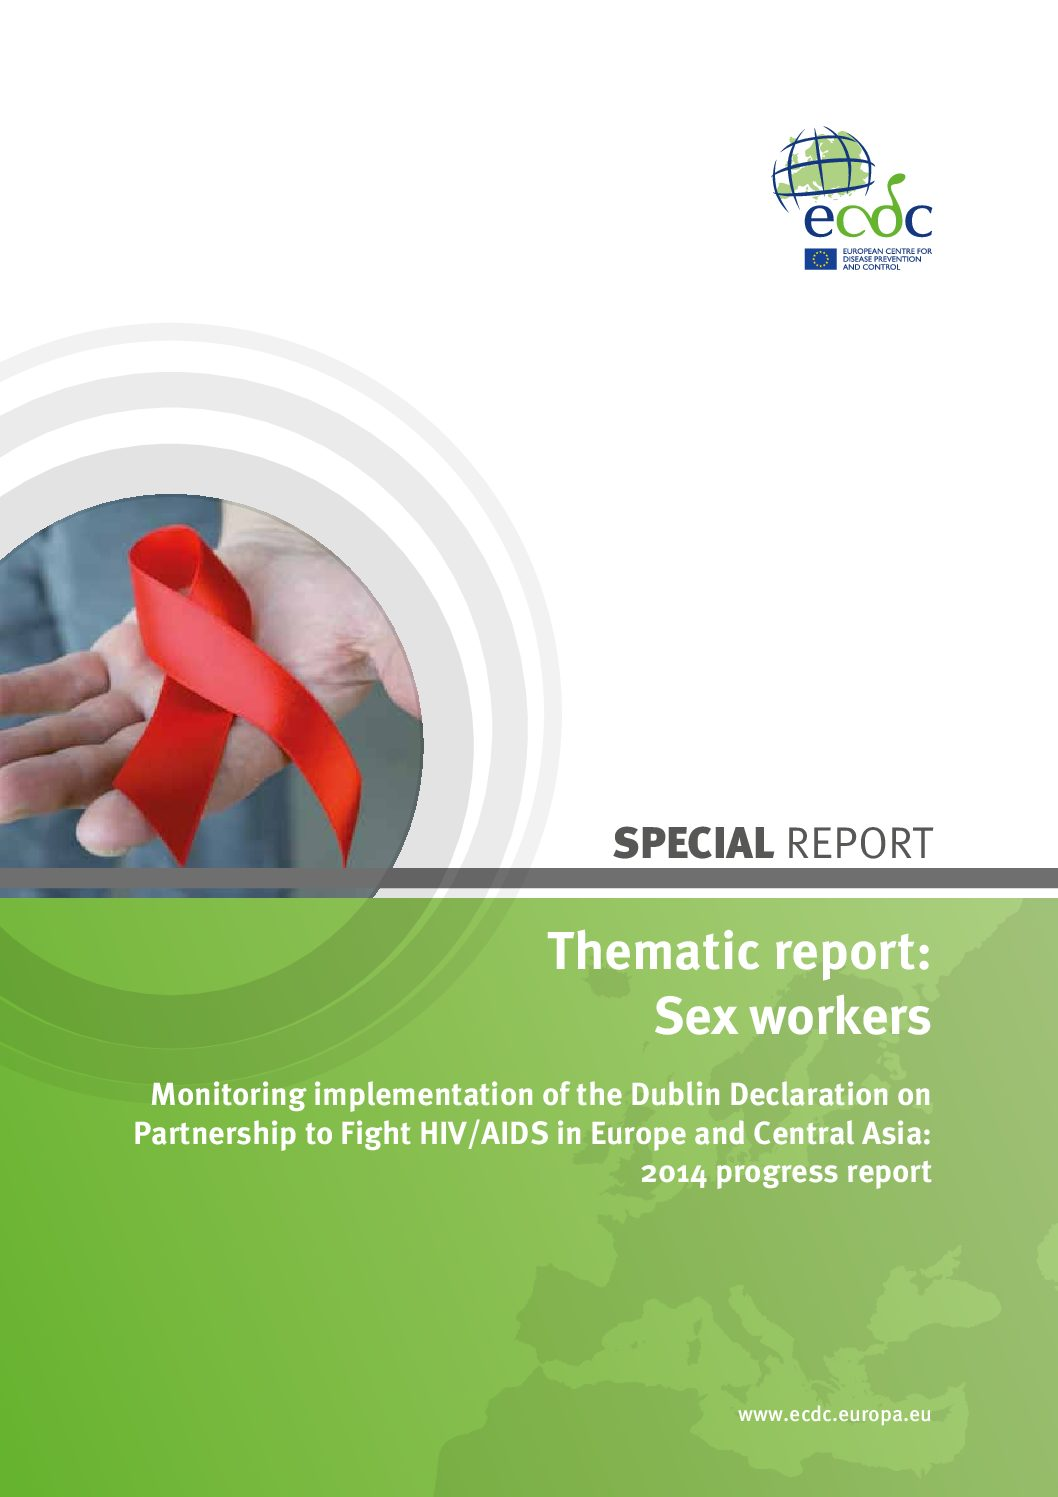 Thematic report: Sex workers. Monitoring implementation of the Dublin Declaration on Partnership to Fight HIV/AIDS in Europe and Central Asia: 2014 progress report